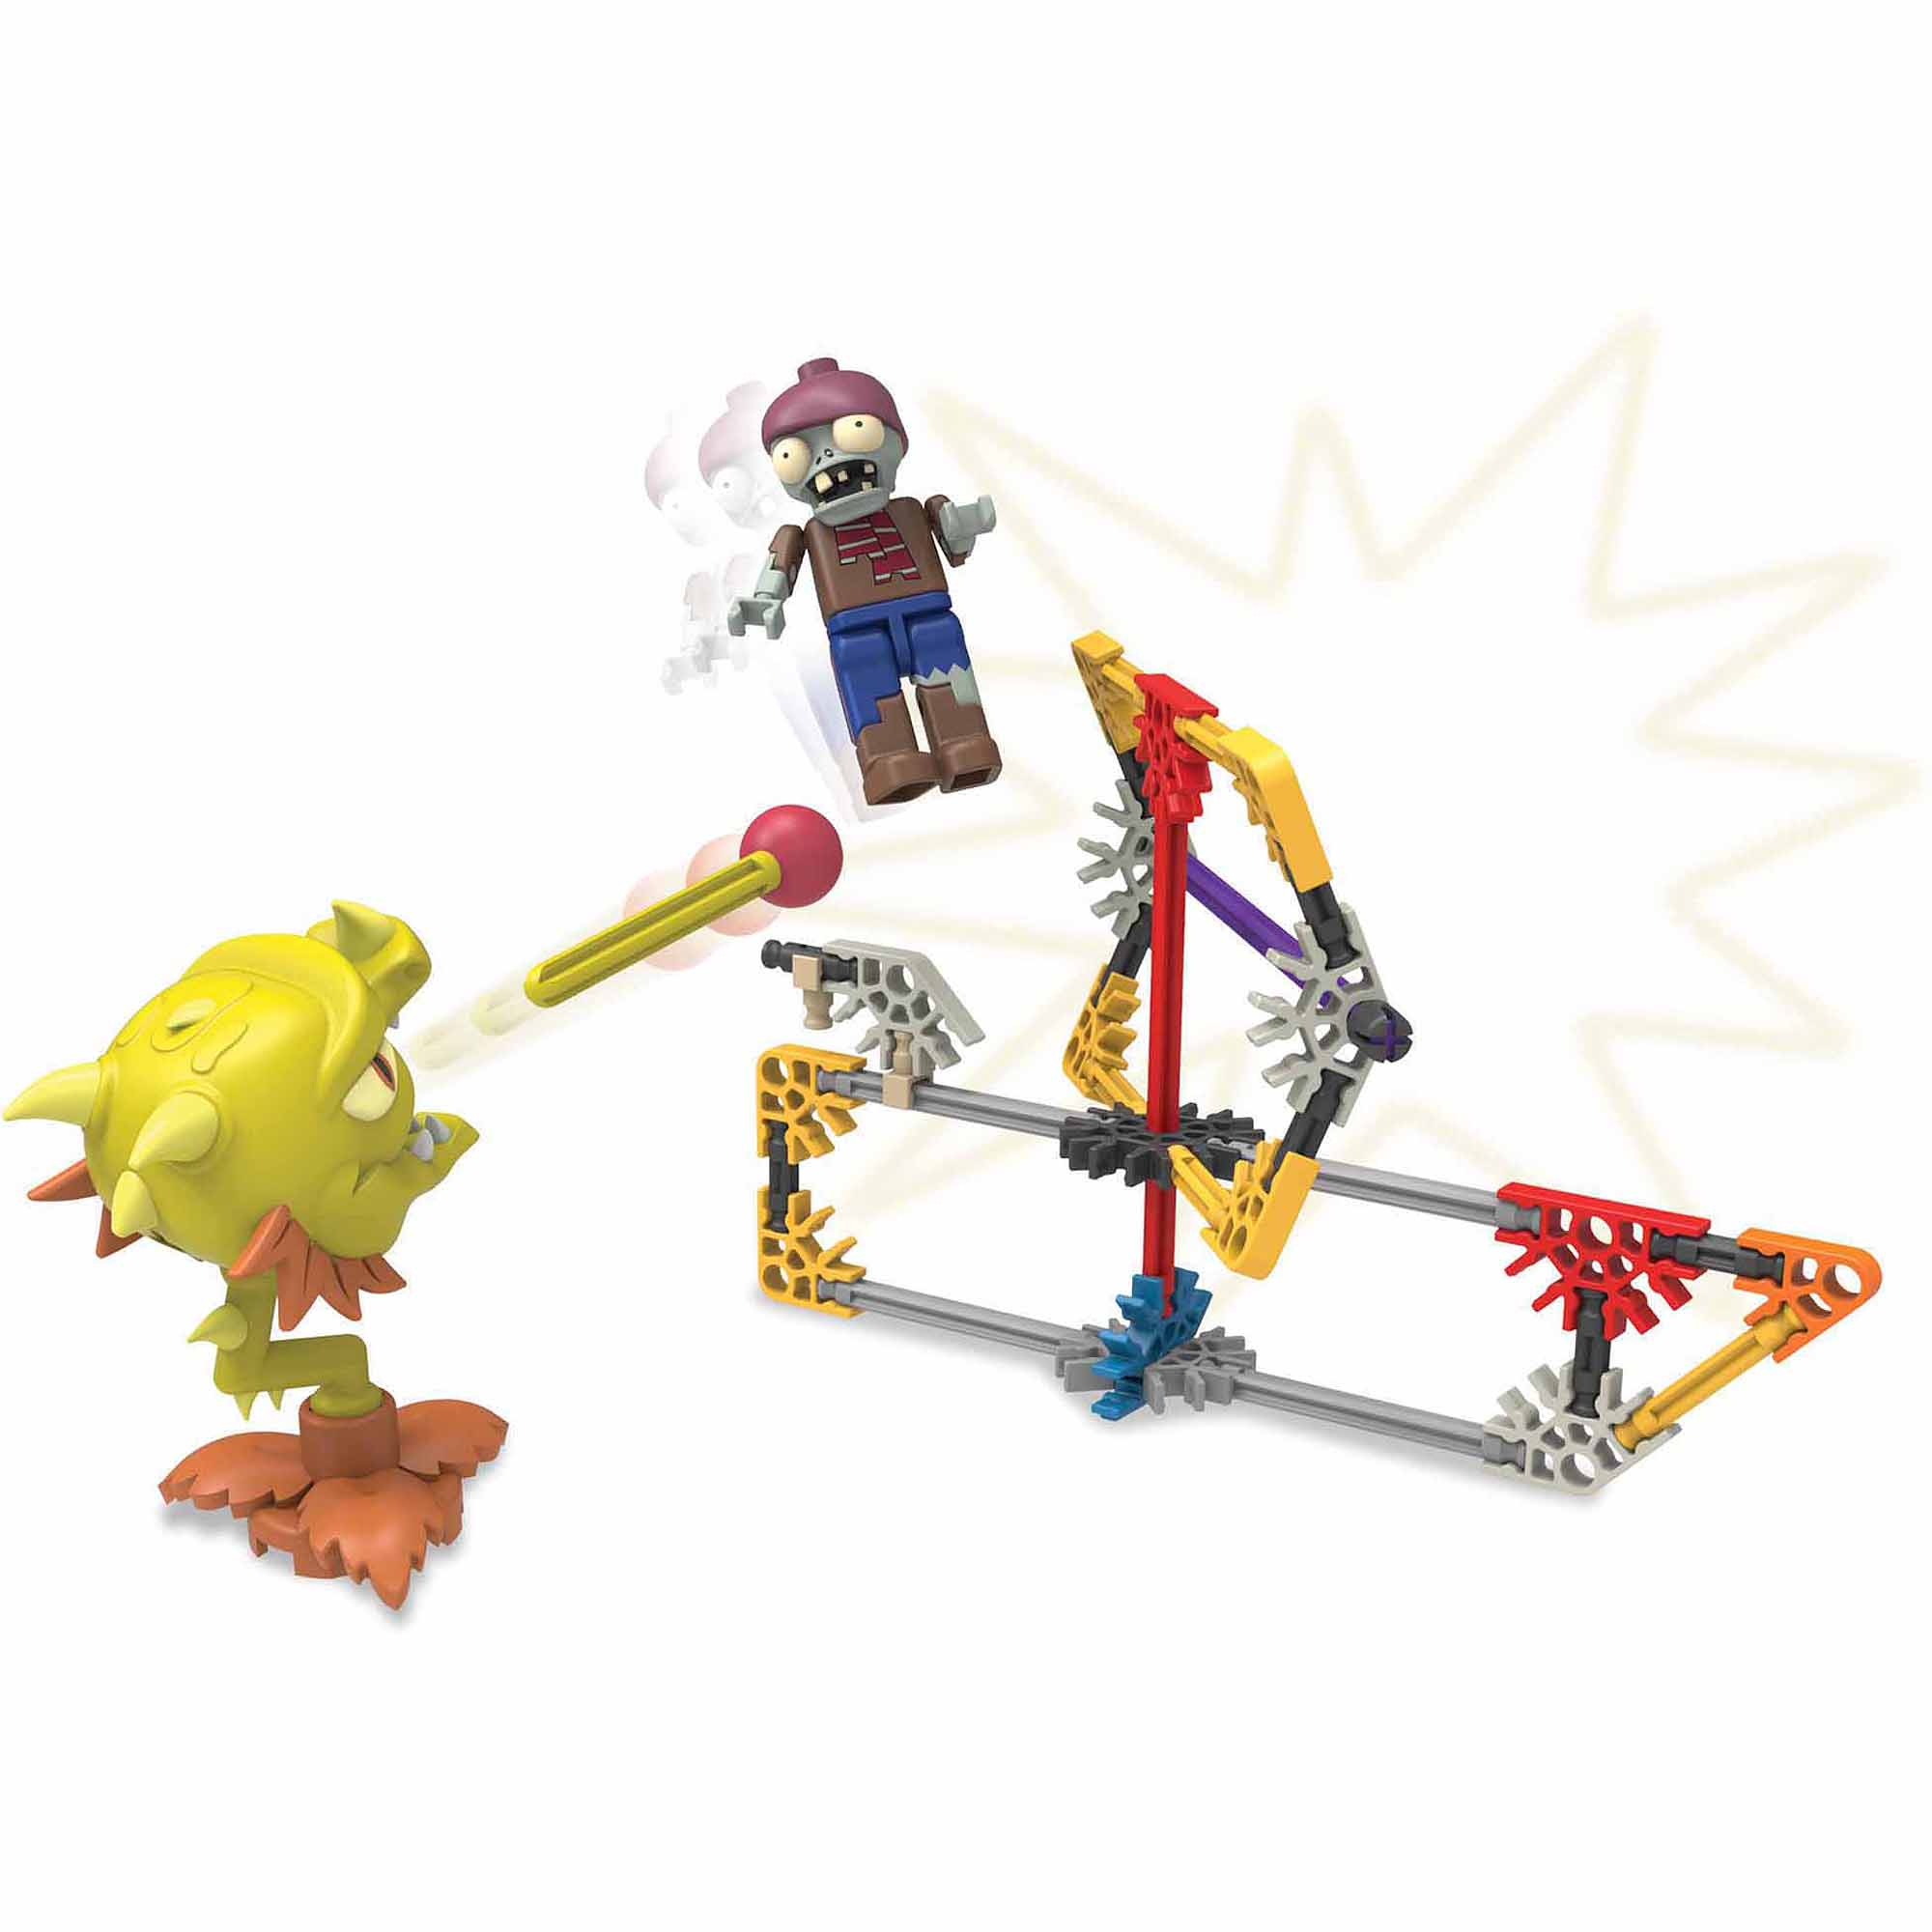 K'NEX Plants vs  Zombies Building Set: JetPack Zombie Attack